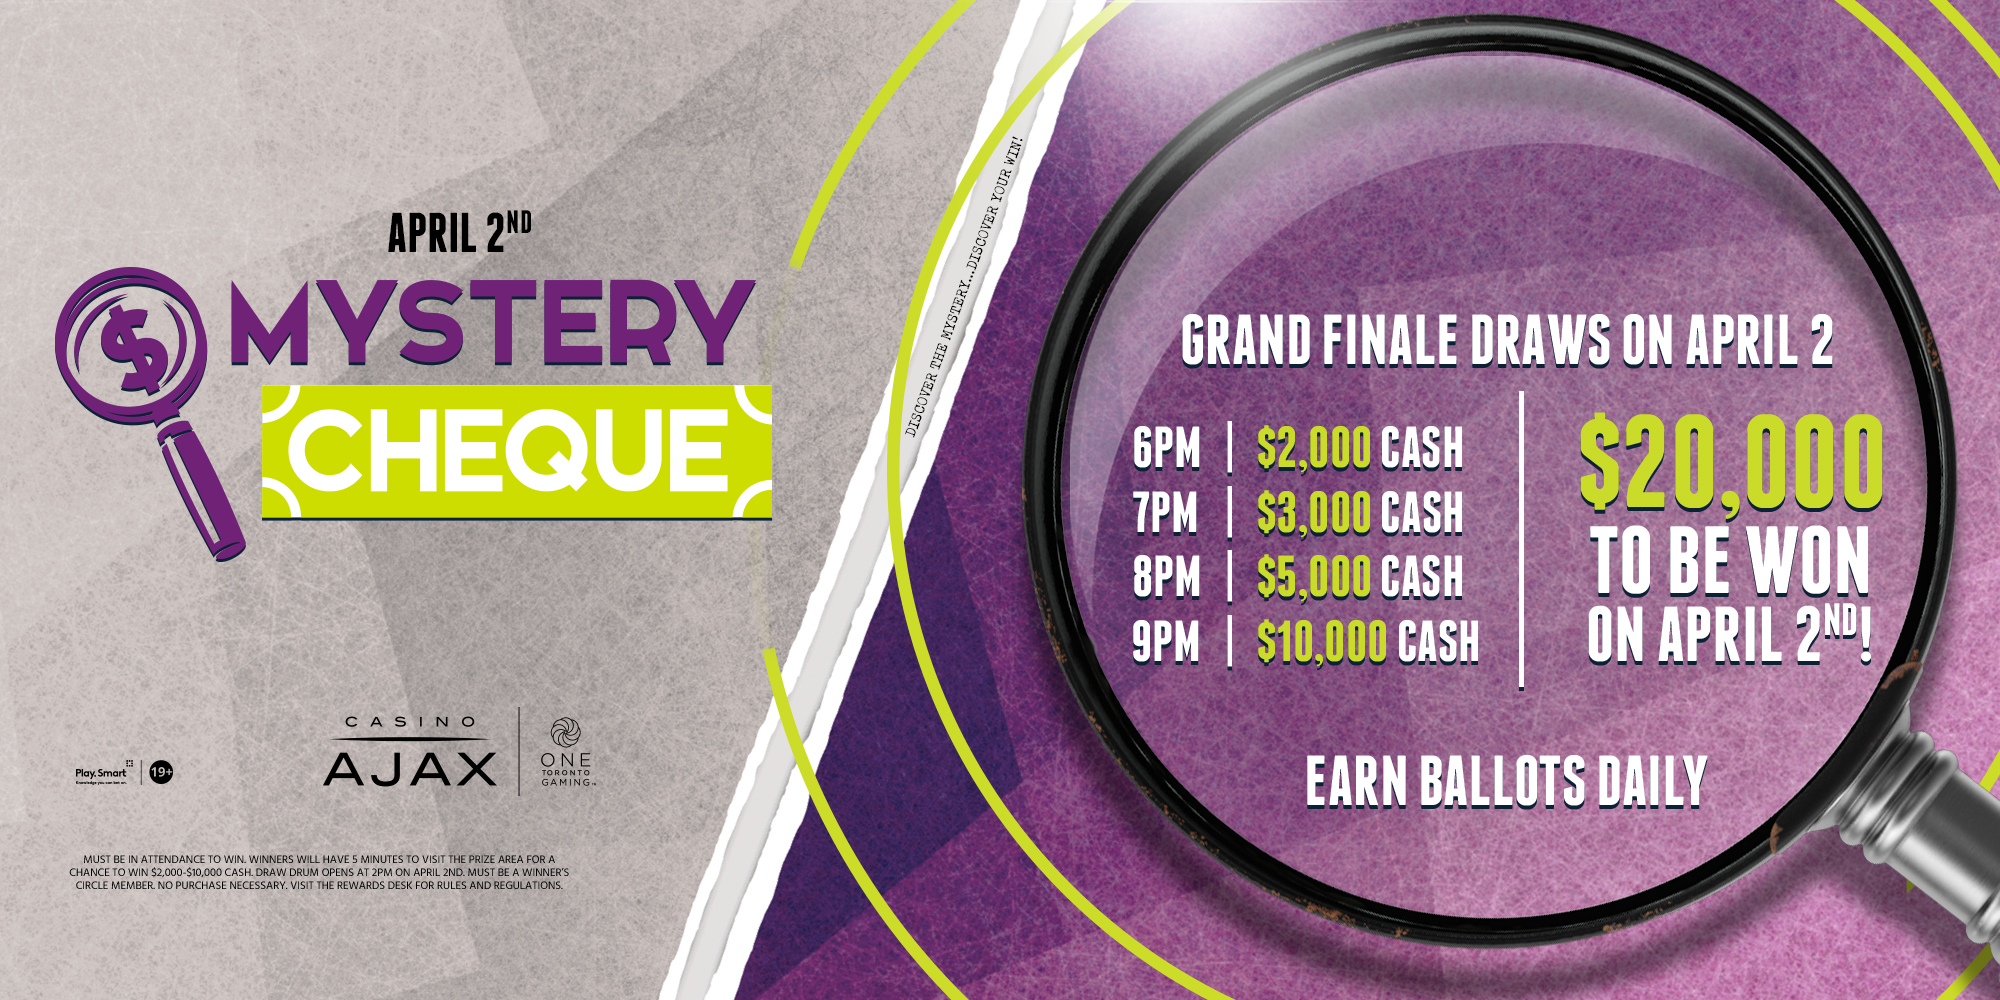 Mystery Cheque April 2, $20.00 0 in cash prizing to be won